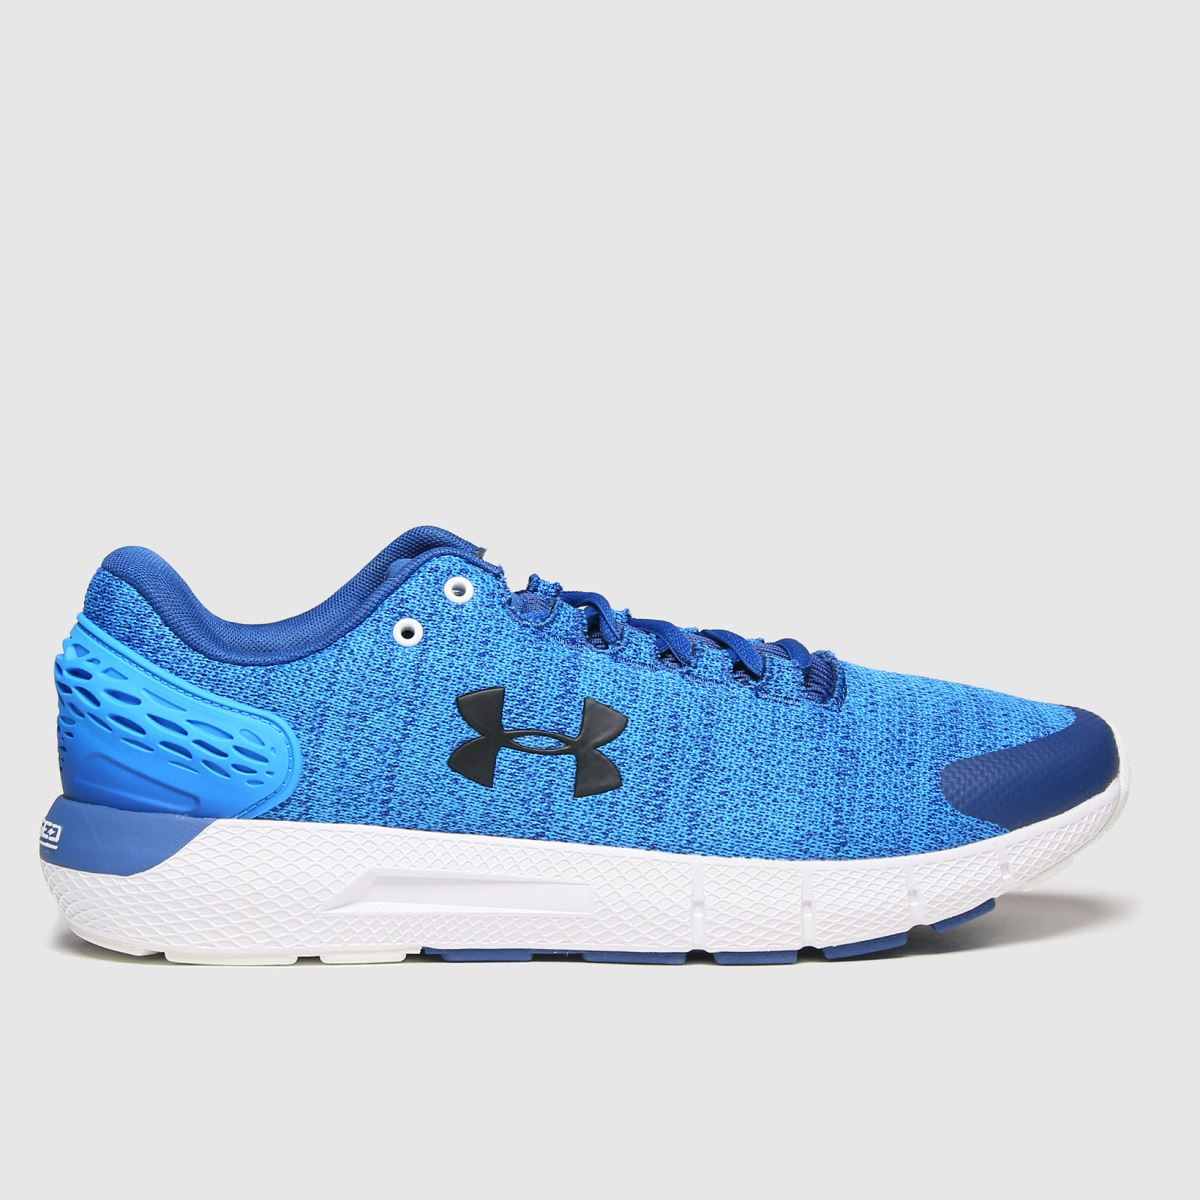 Under Armour Blue Charged Rogue 2 Trainers